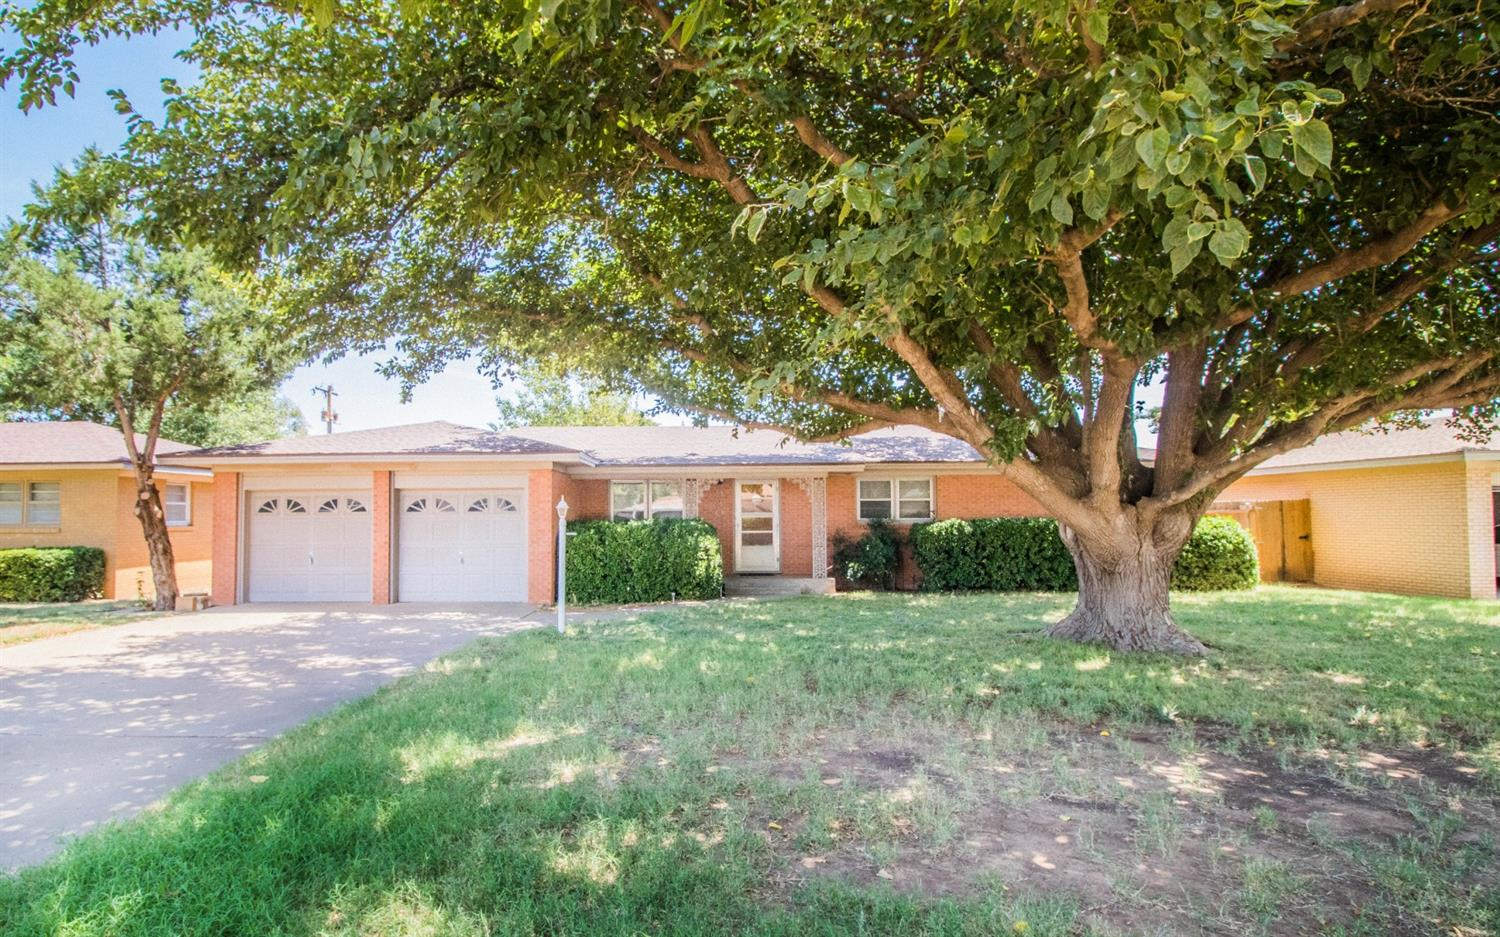 Check out this Amazing Home in Slaton!!! This 3/2/2 is on a great wide street, large front and backyard, and good size rooms. Carpet in rooms except for kitchen, bathrooms and laundry room. HARDWOOD floors are beneath the carpet. Call Liz today to see this great home. 806-632-5666